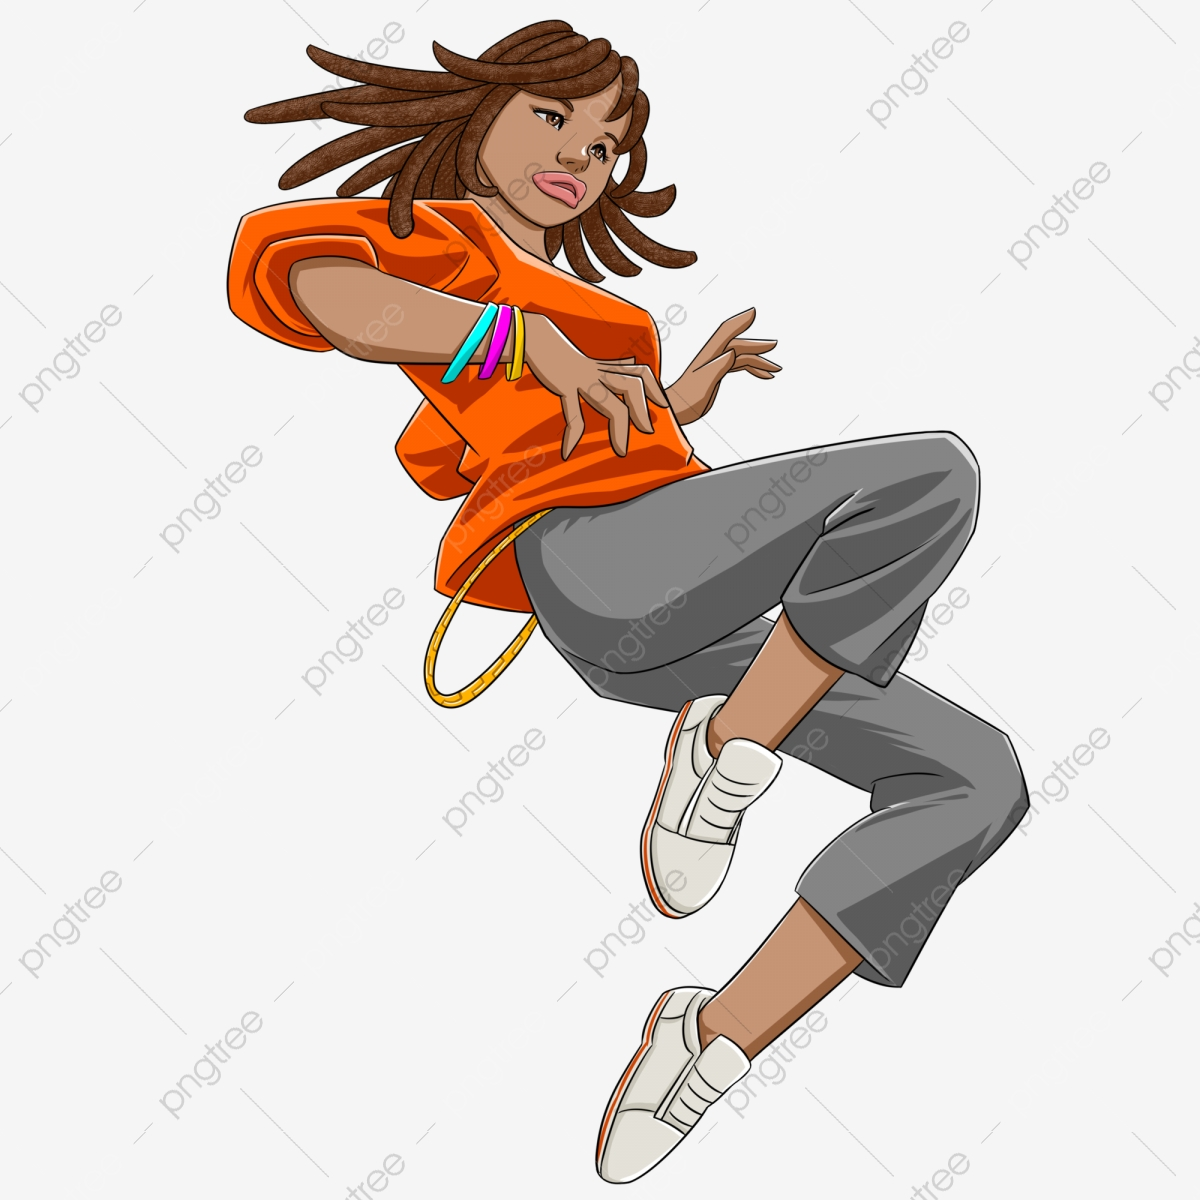 Madden Black Hip Hop Girl Black Girl Street Dance Png Transparent Clipart Image And Psd File For Free Download